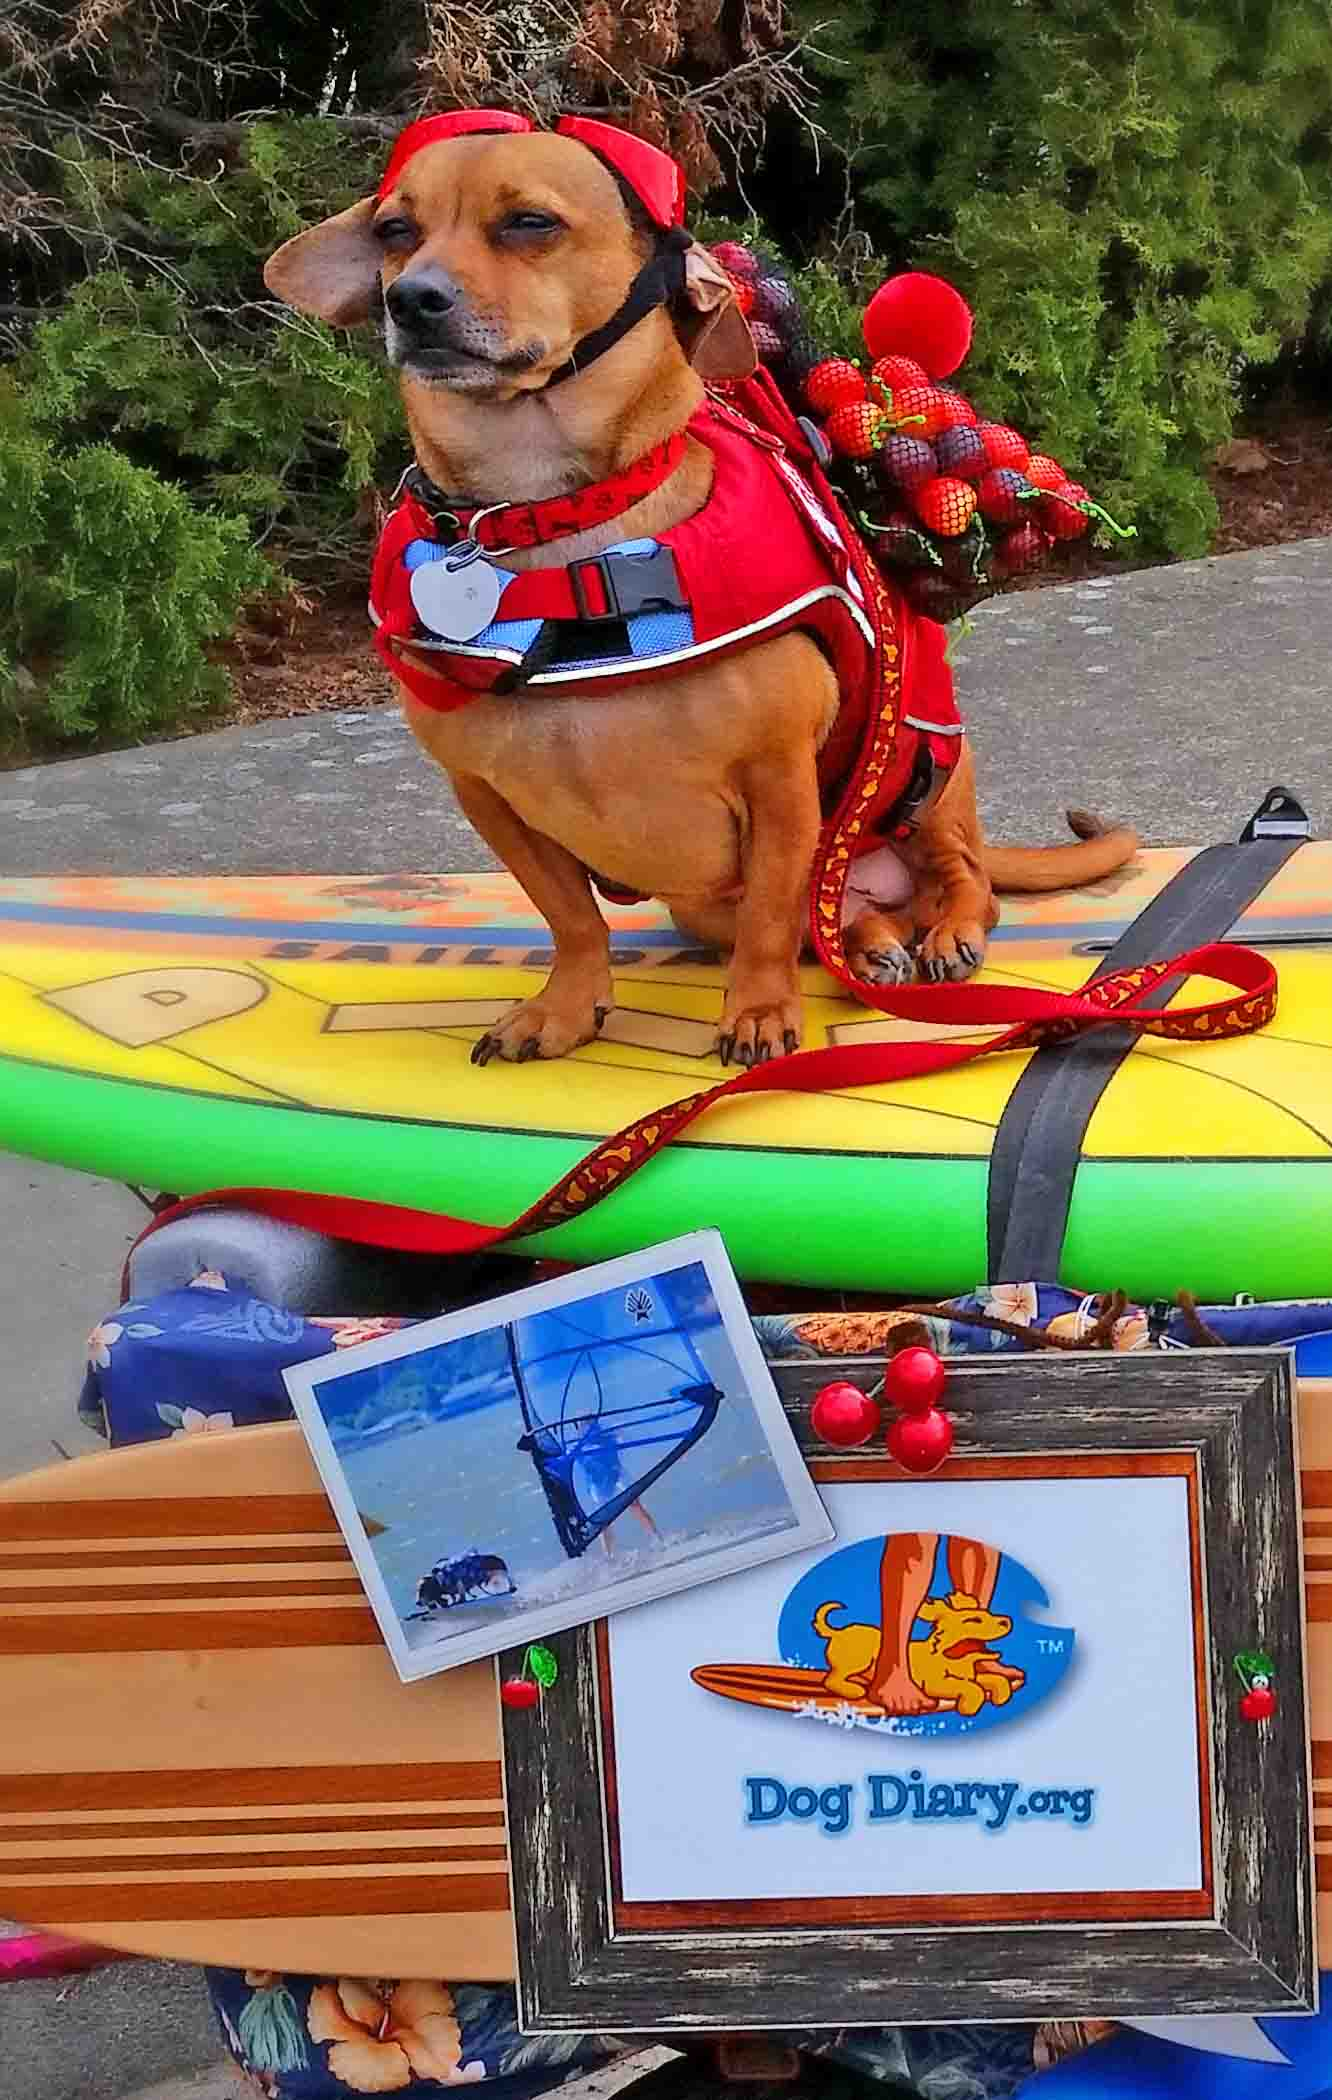 Doodle here, on my land board surfboard rig,  for parades and dog walks. Just like Howdy, Elvis and Dude did.           Photo: (c) Barb Ayers, DogDiary.org